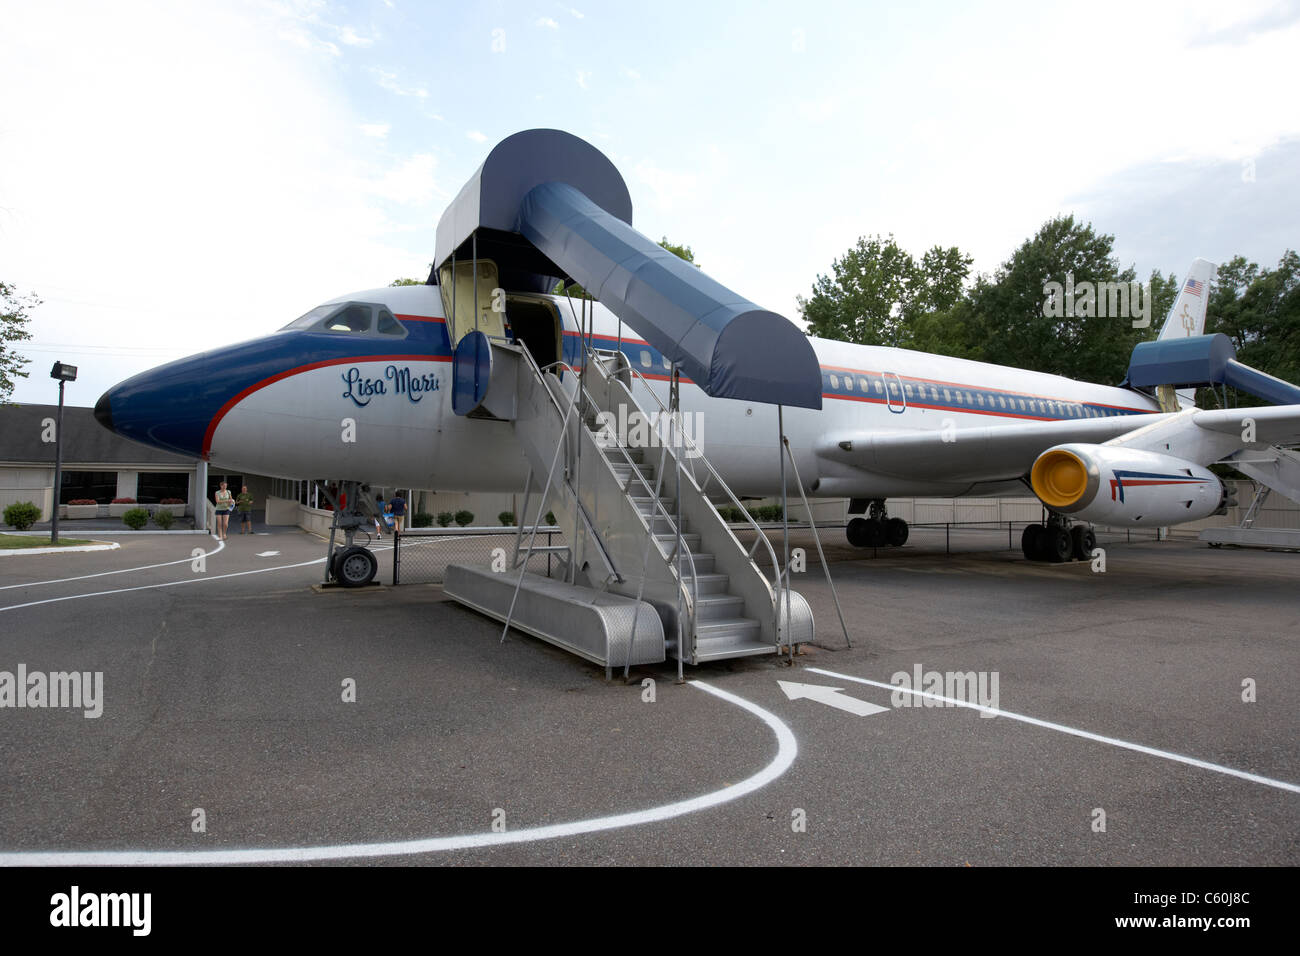 elvis's lisa marie aircraft at graceland memphis tennessee usa - Stock Image